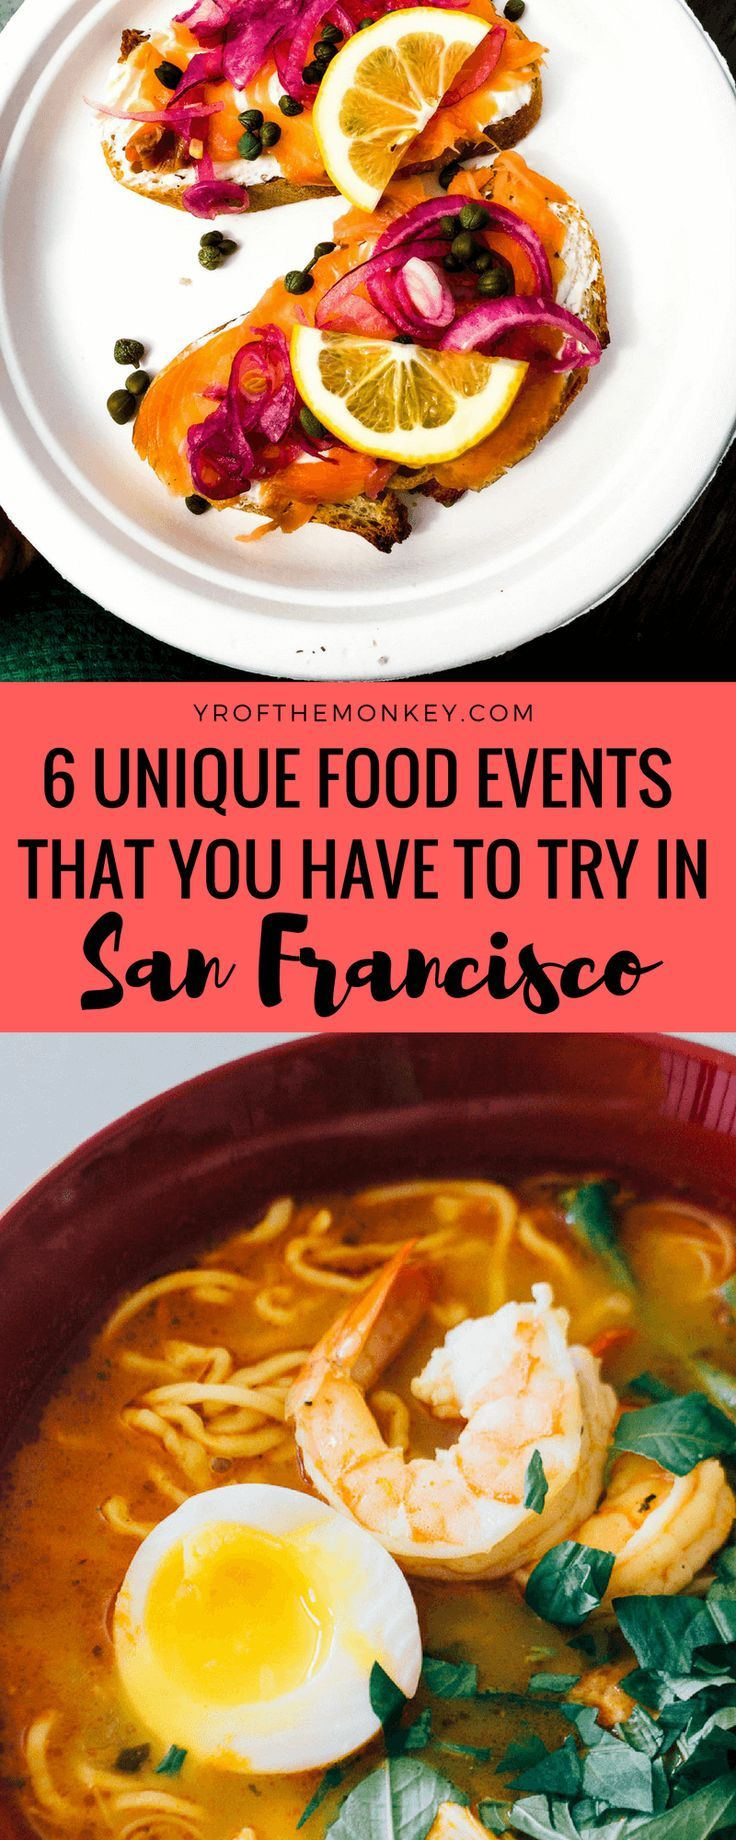 Unique eats San Francisco is your guide to 6 unique food events in the city which goes beyond SF restaurant reservations. A resident foodie's guide, this post is about San Francisco alternate dining with food tours, social dining, farmers markets, food ha